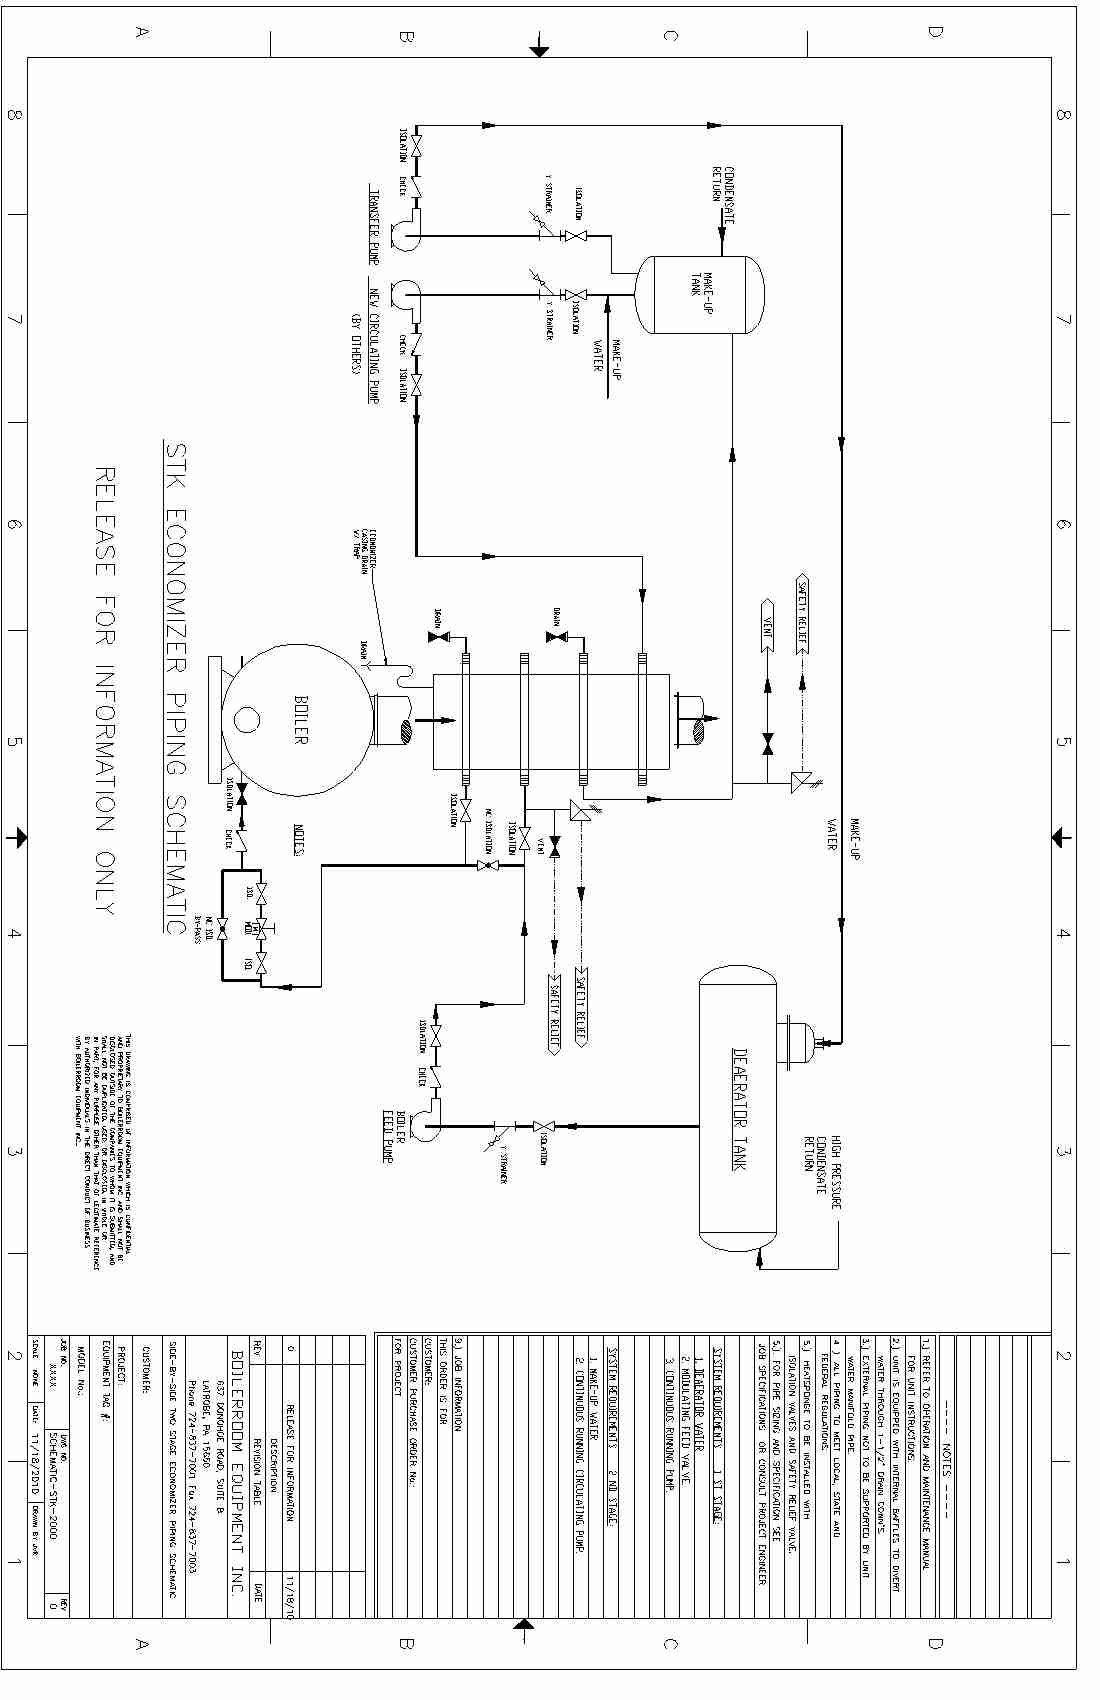 Condensing Boiler Piping Schematic What Is A Diagram Images